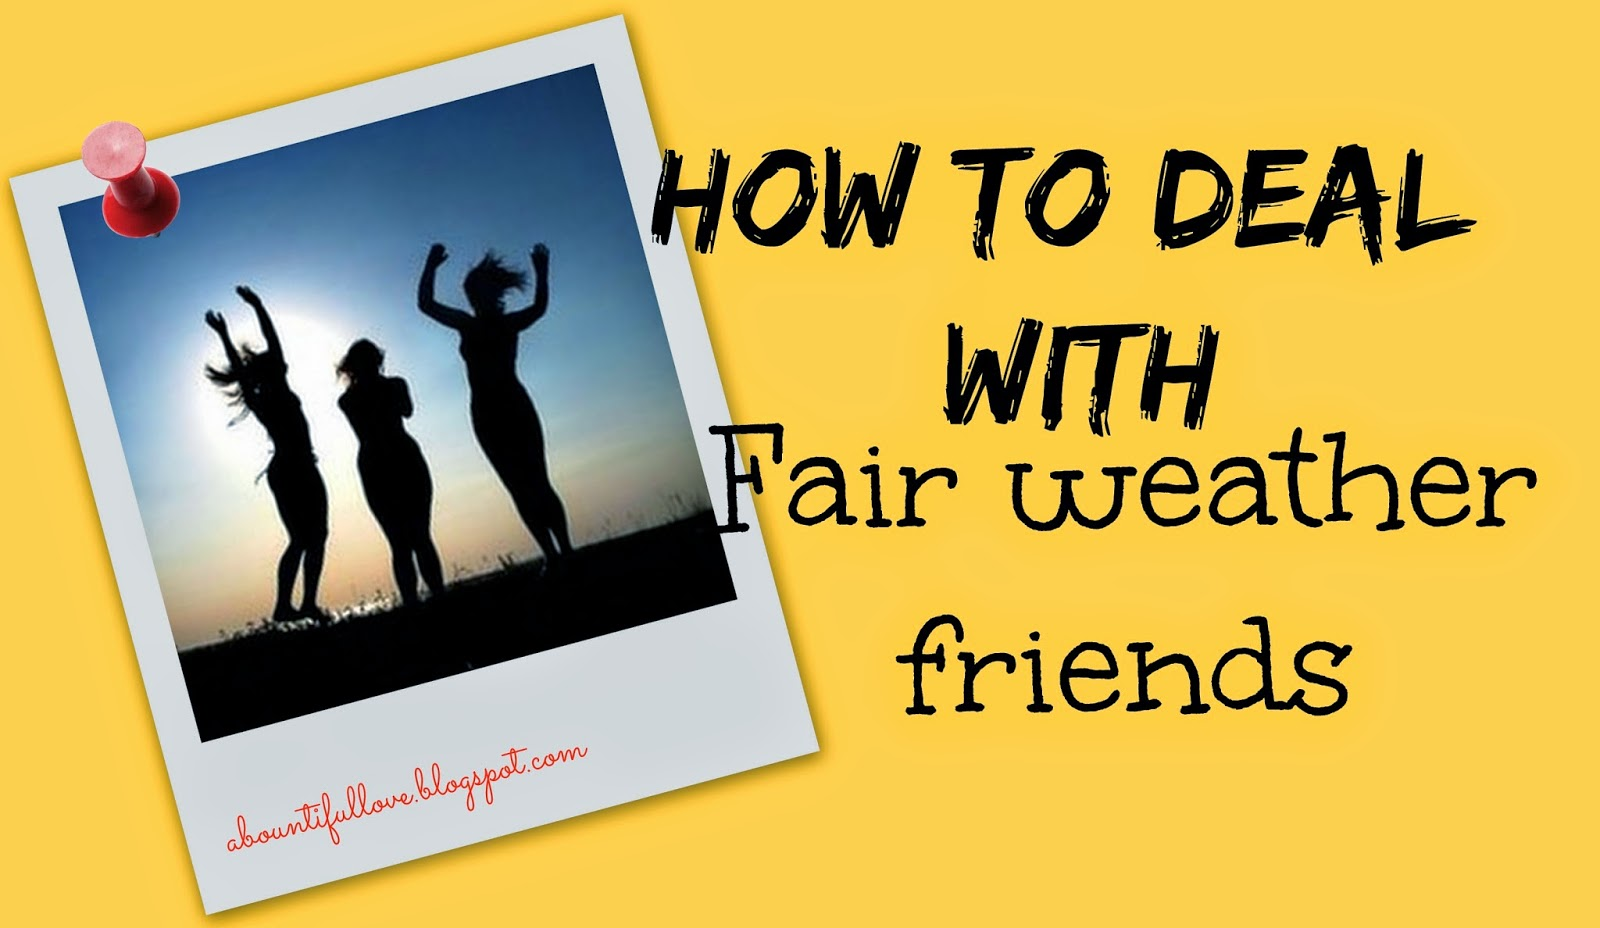 How to Deal with Fair Weather Friends - A Bountiful Love